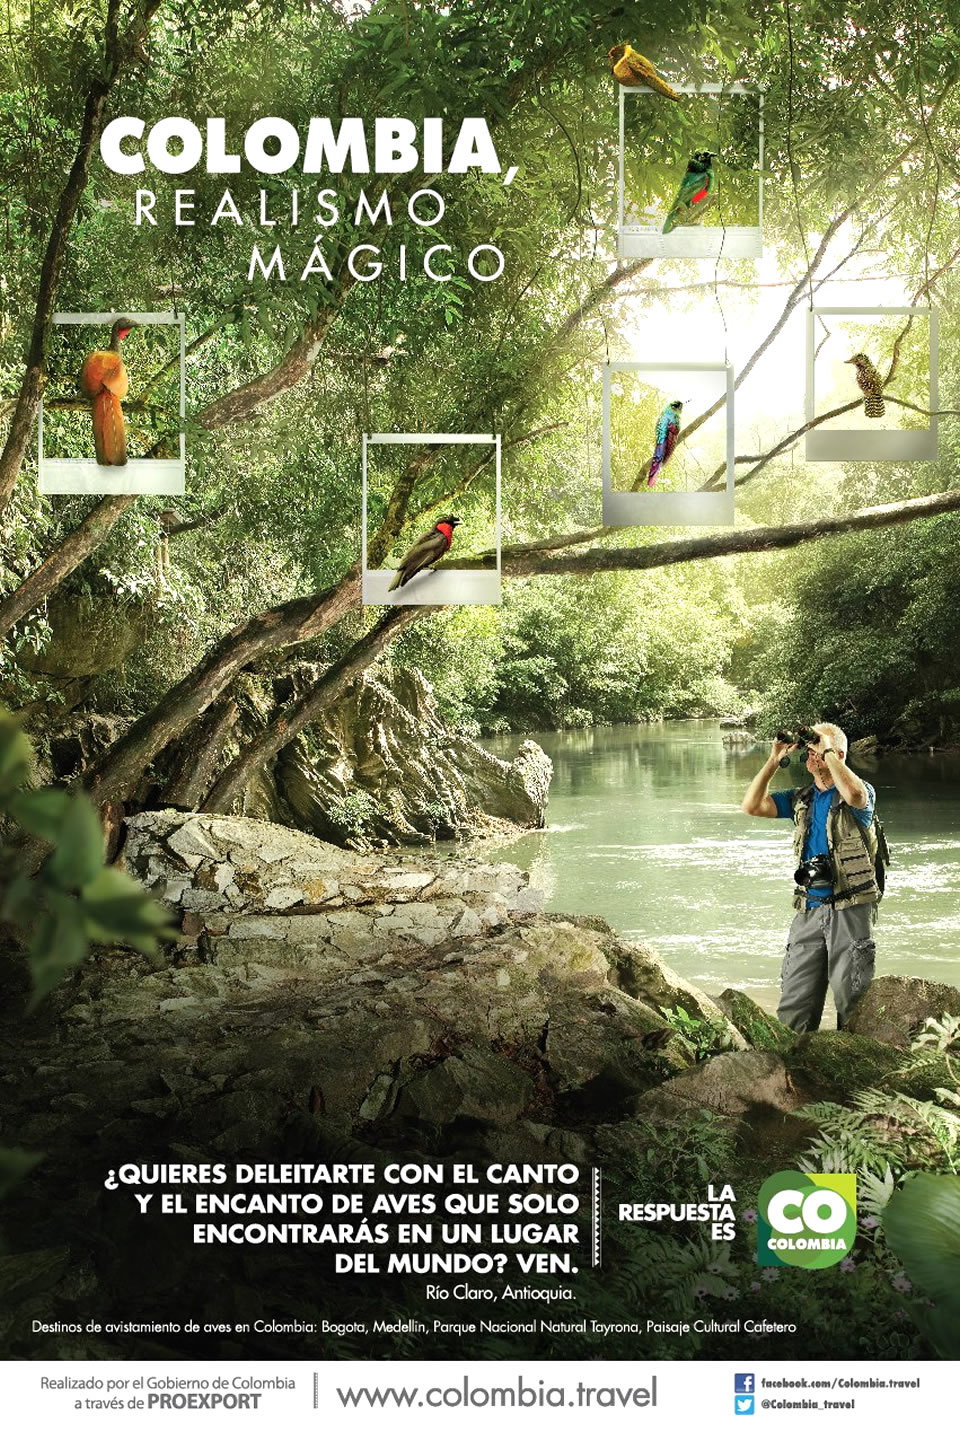 Rio Claro Tourism Advertisement Poster of Colombia Magical Realism